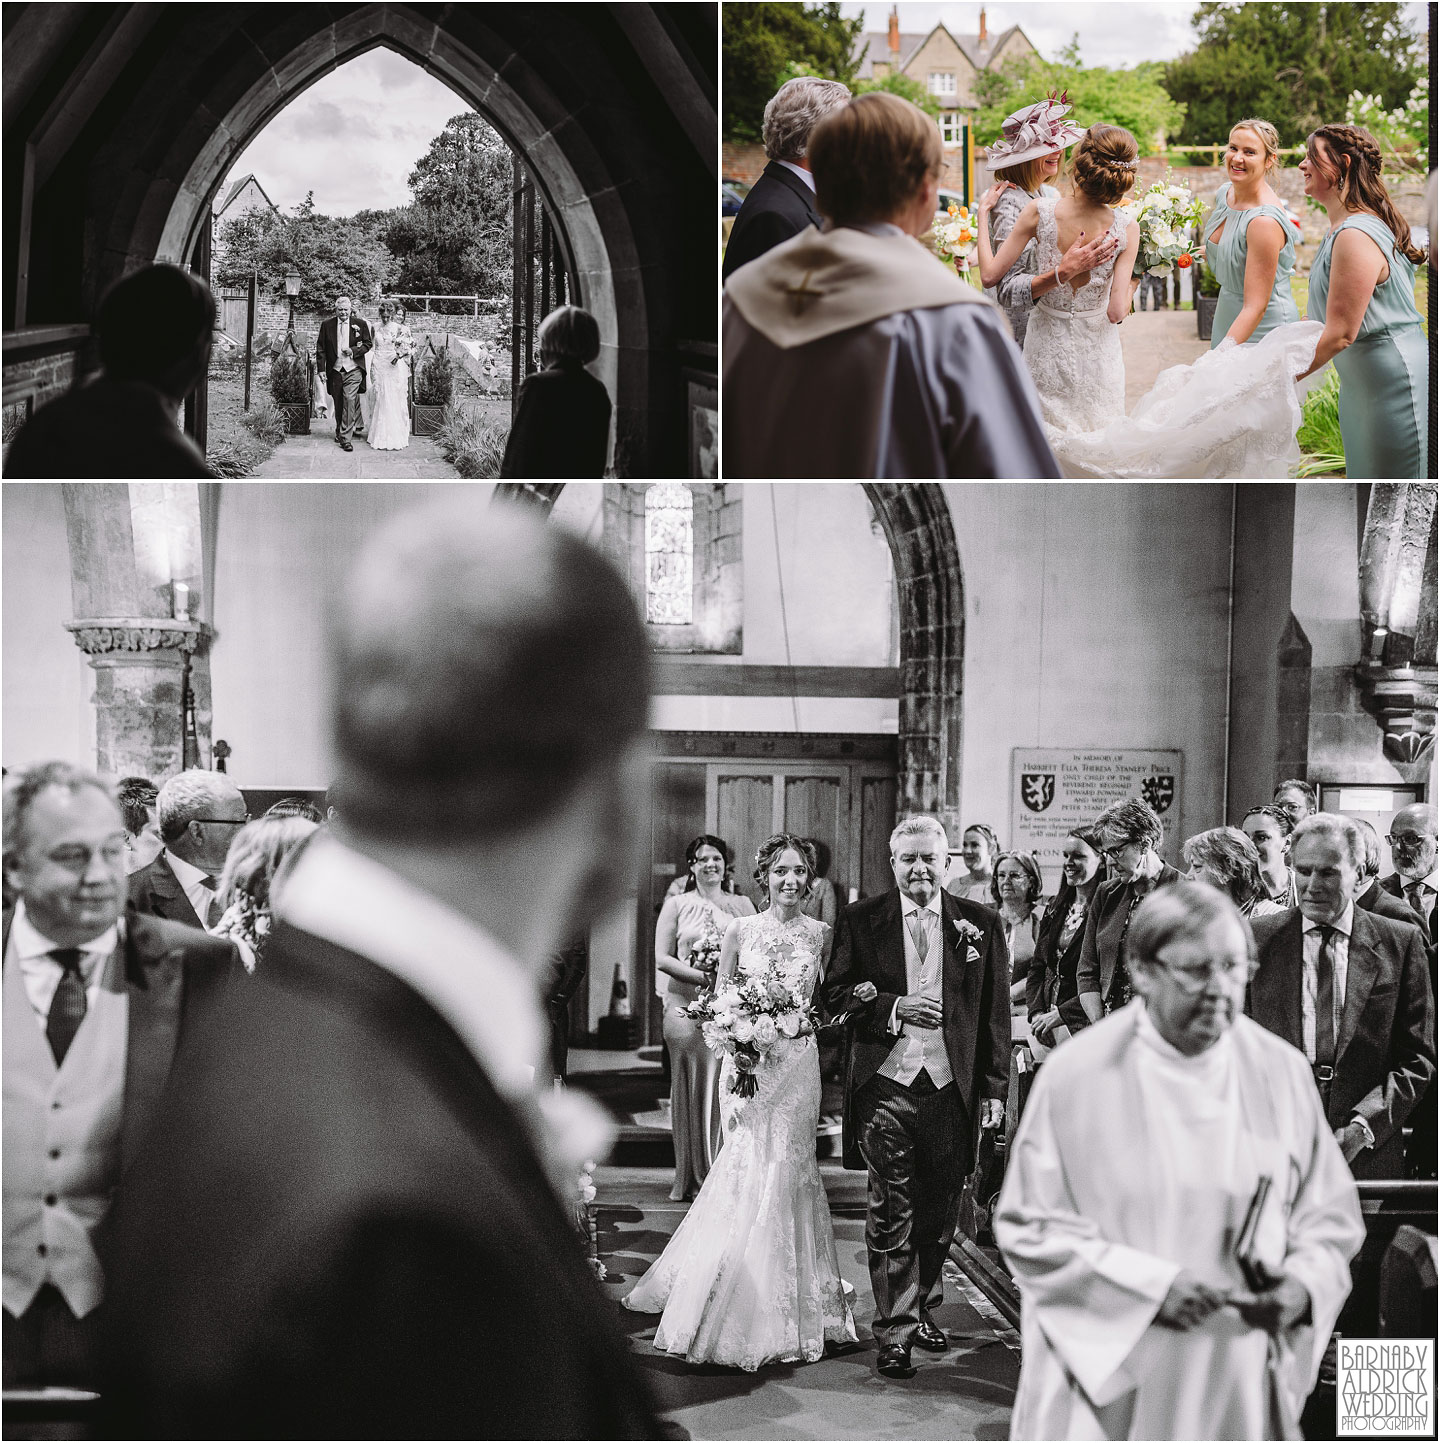 St Mary's church ceremony goldsborough Confetti, Goldsborough Hall Wedding Photos, Goldsborough Hall Wedding Photography, Yorkshire Wedding, Yorkshire Wedding Photographer, Knaresborough Wedding, Harrogate wedding venue, Yorkshire Stately House Wedding